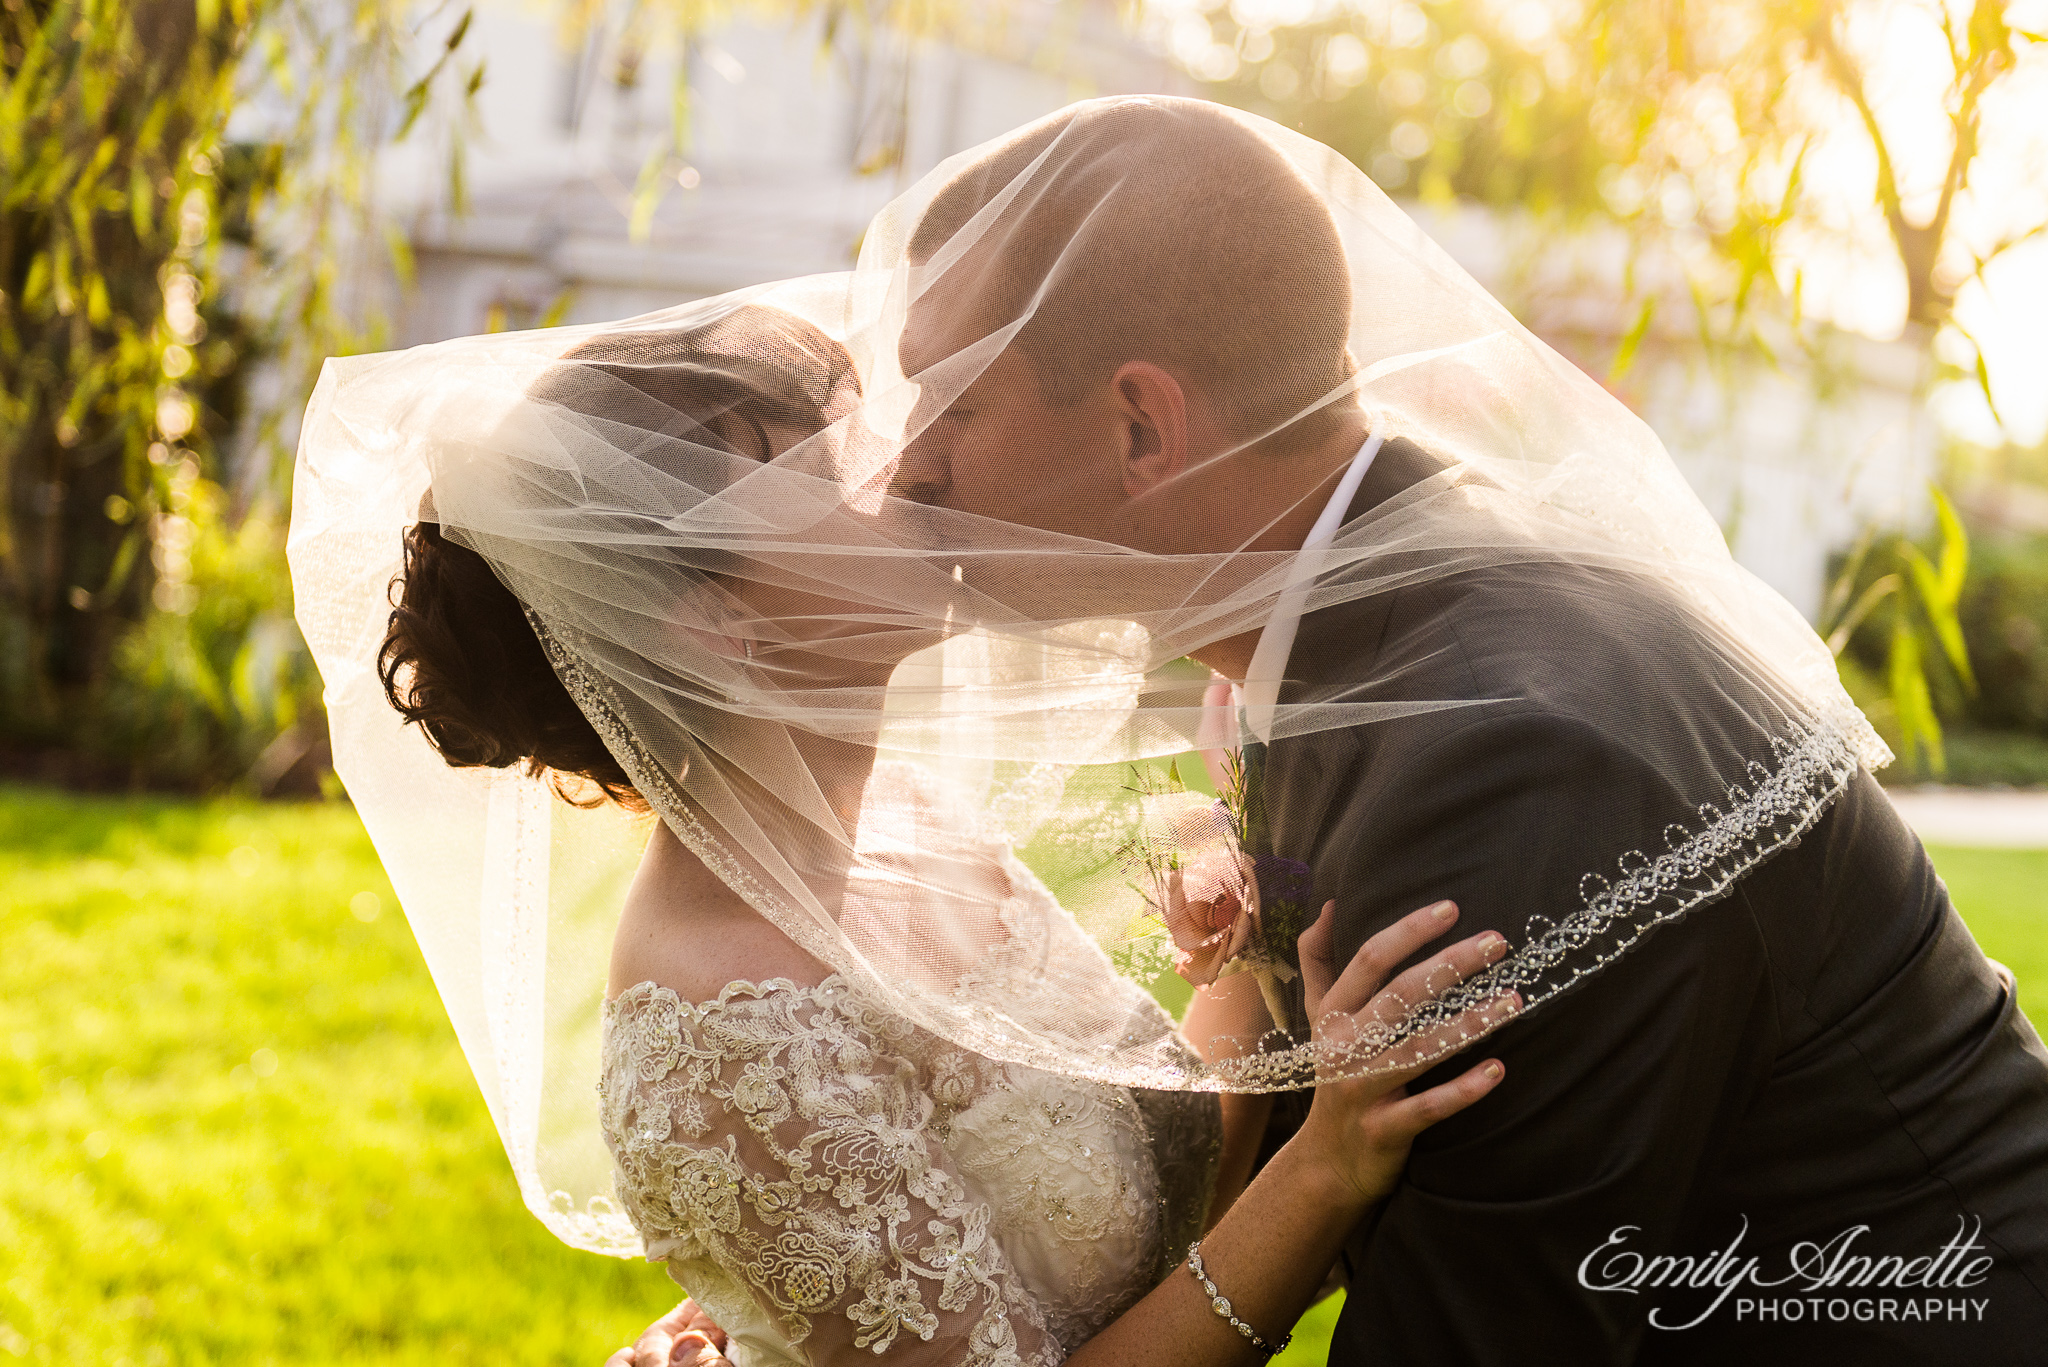 A bride and groom share a kiss under the bridal veil during golden hour after their country wedding at Amber Grove near Richmond, Virginia